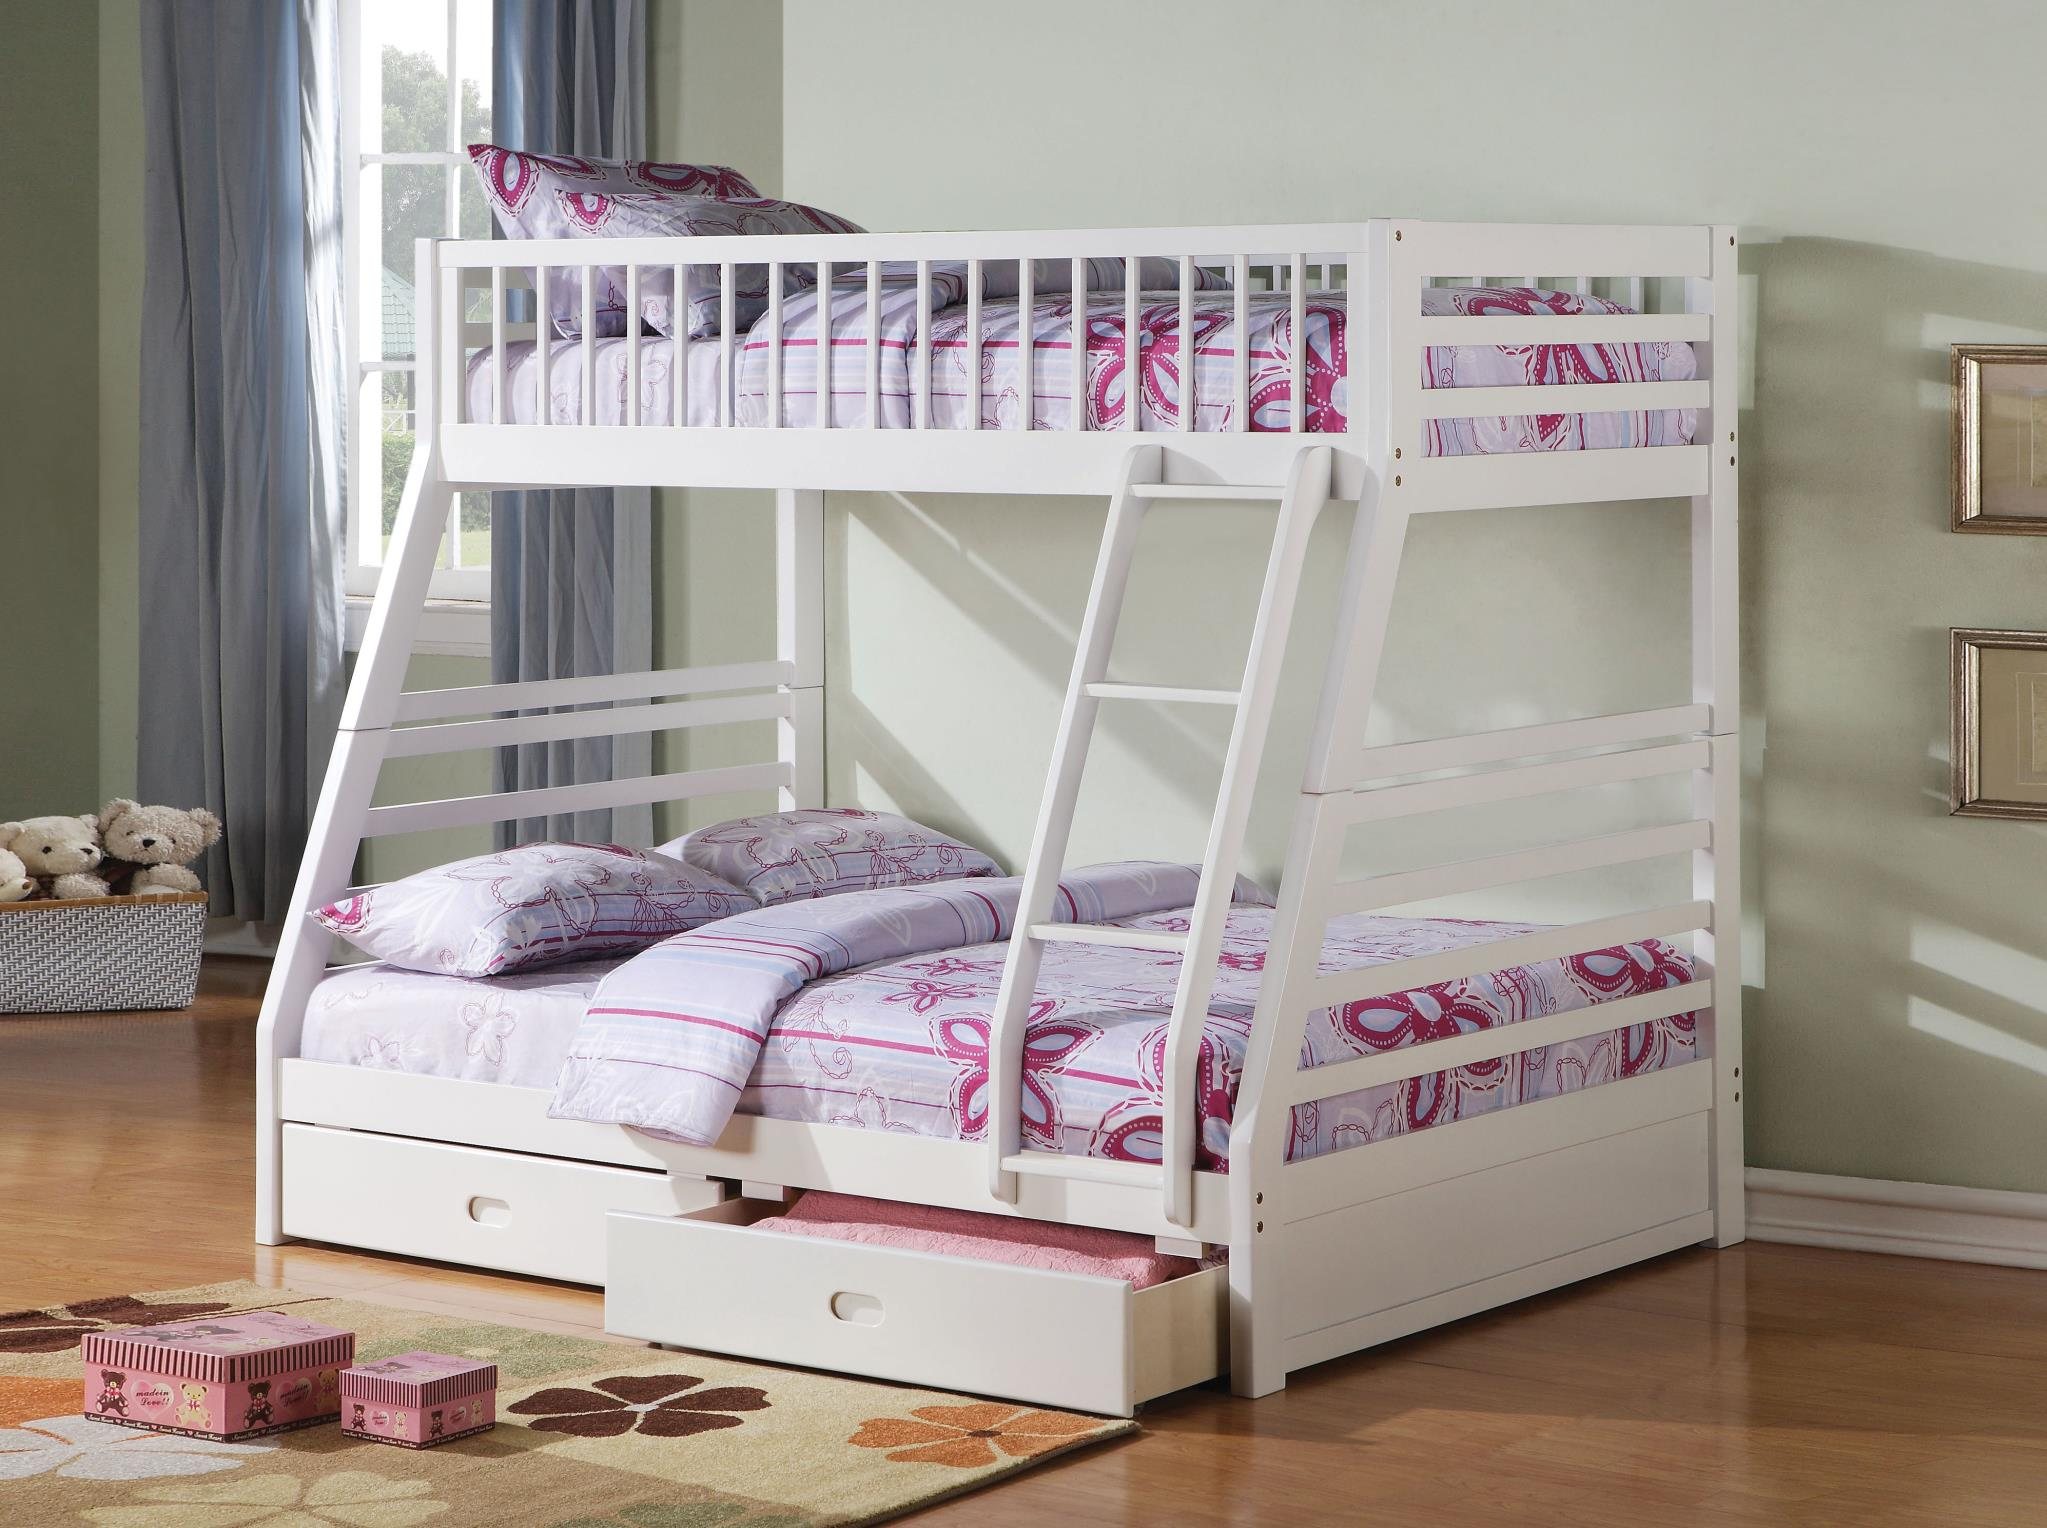 Twin/Full Bunk Bed w/ 2 Drawers